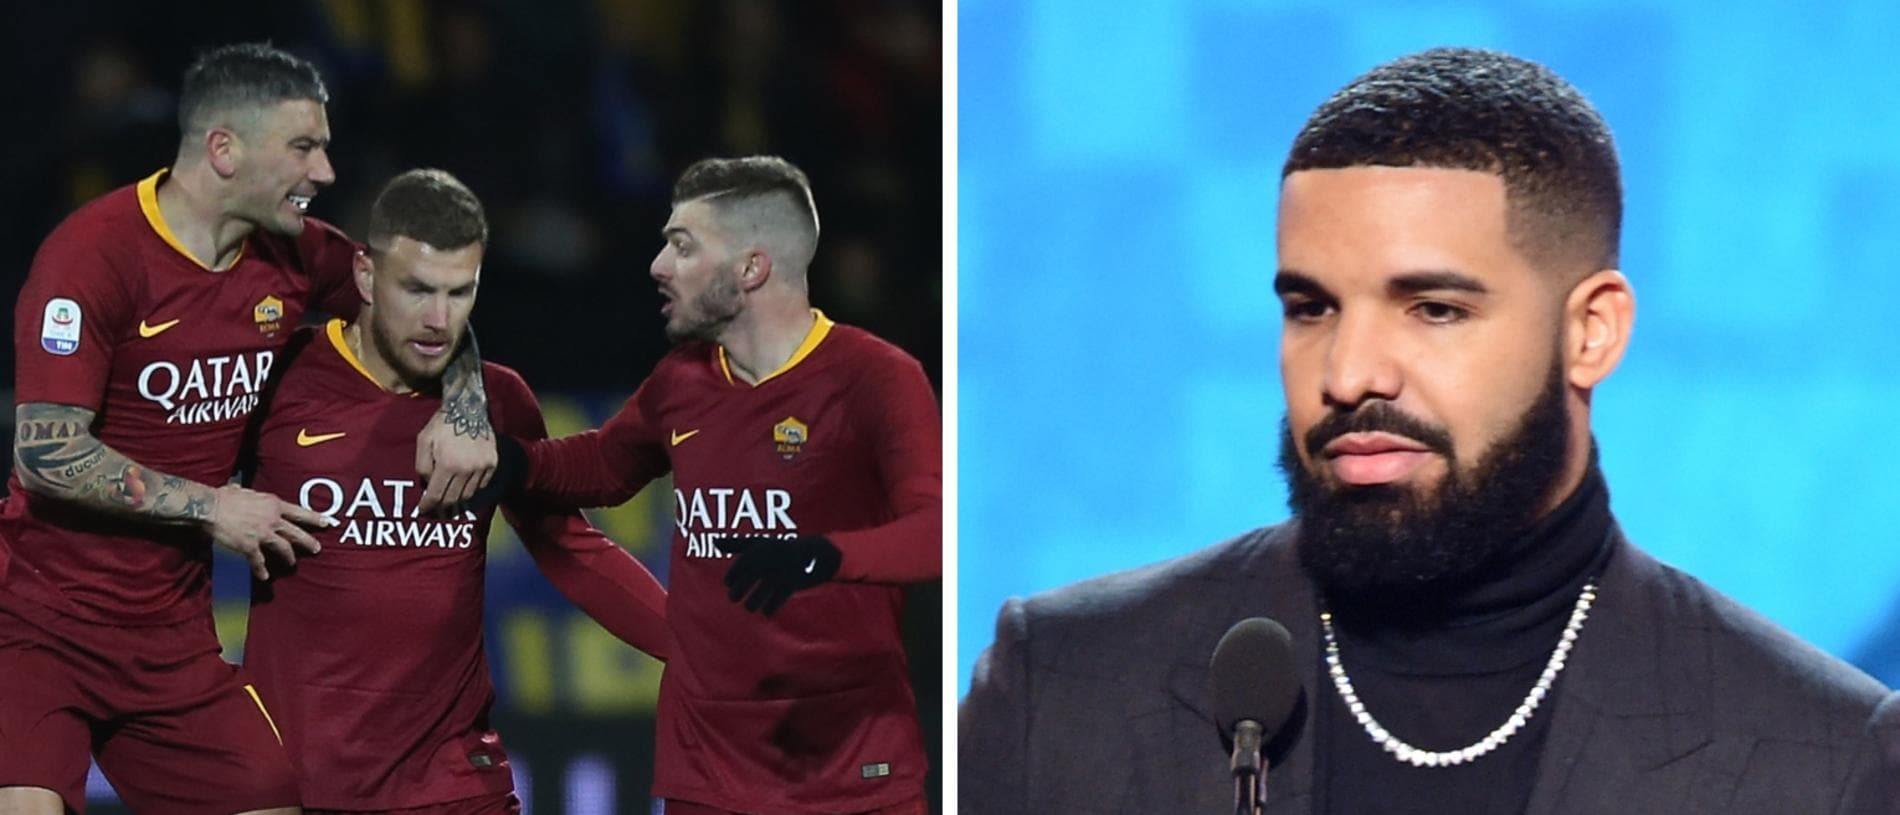 Roma have banned their players from taking photos with Drake